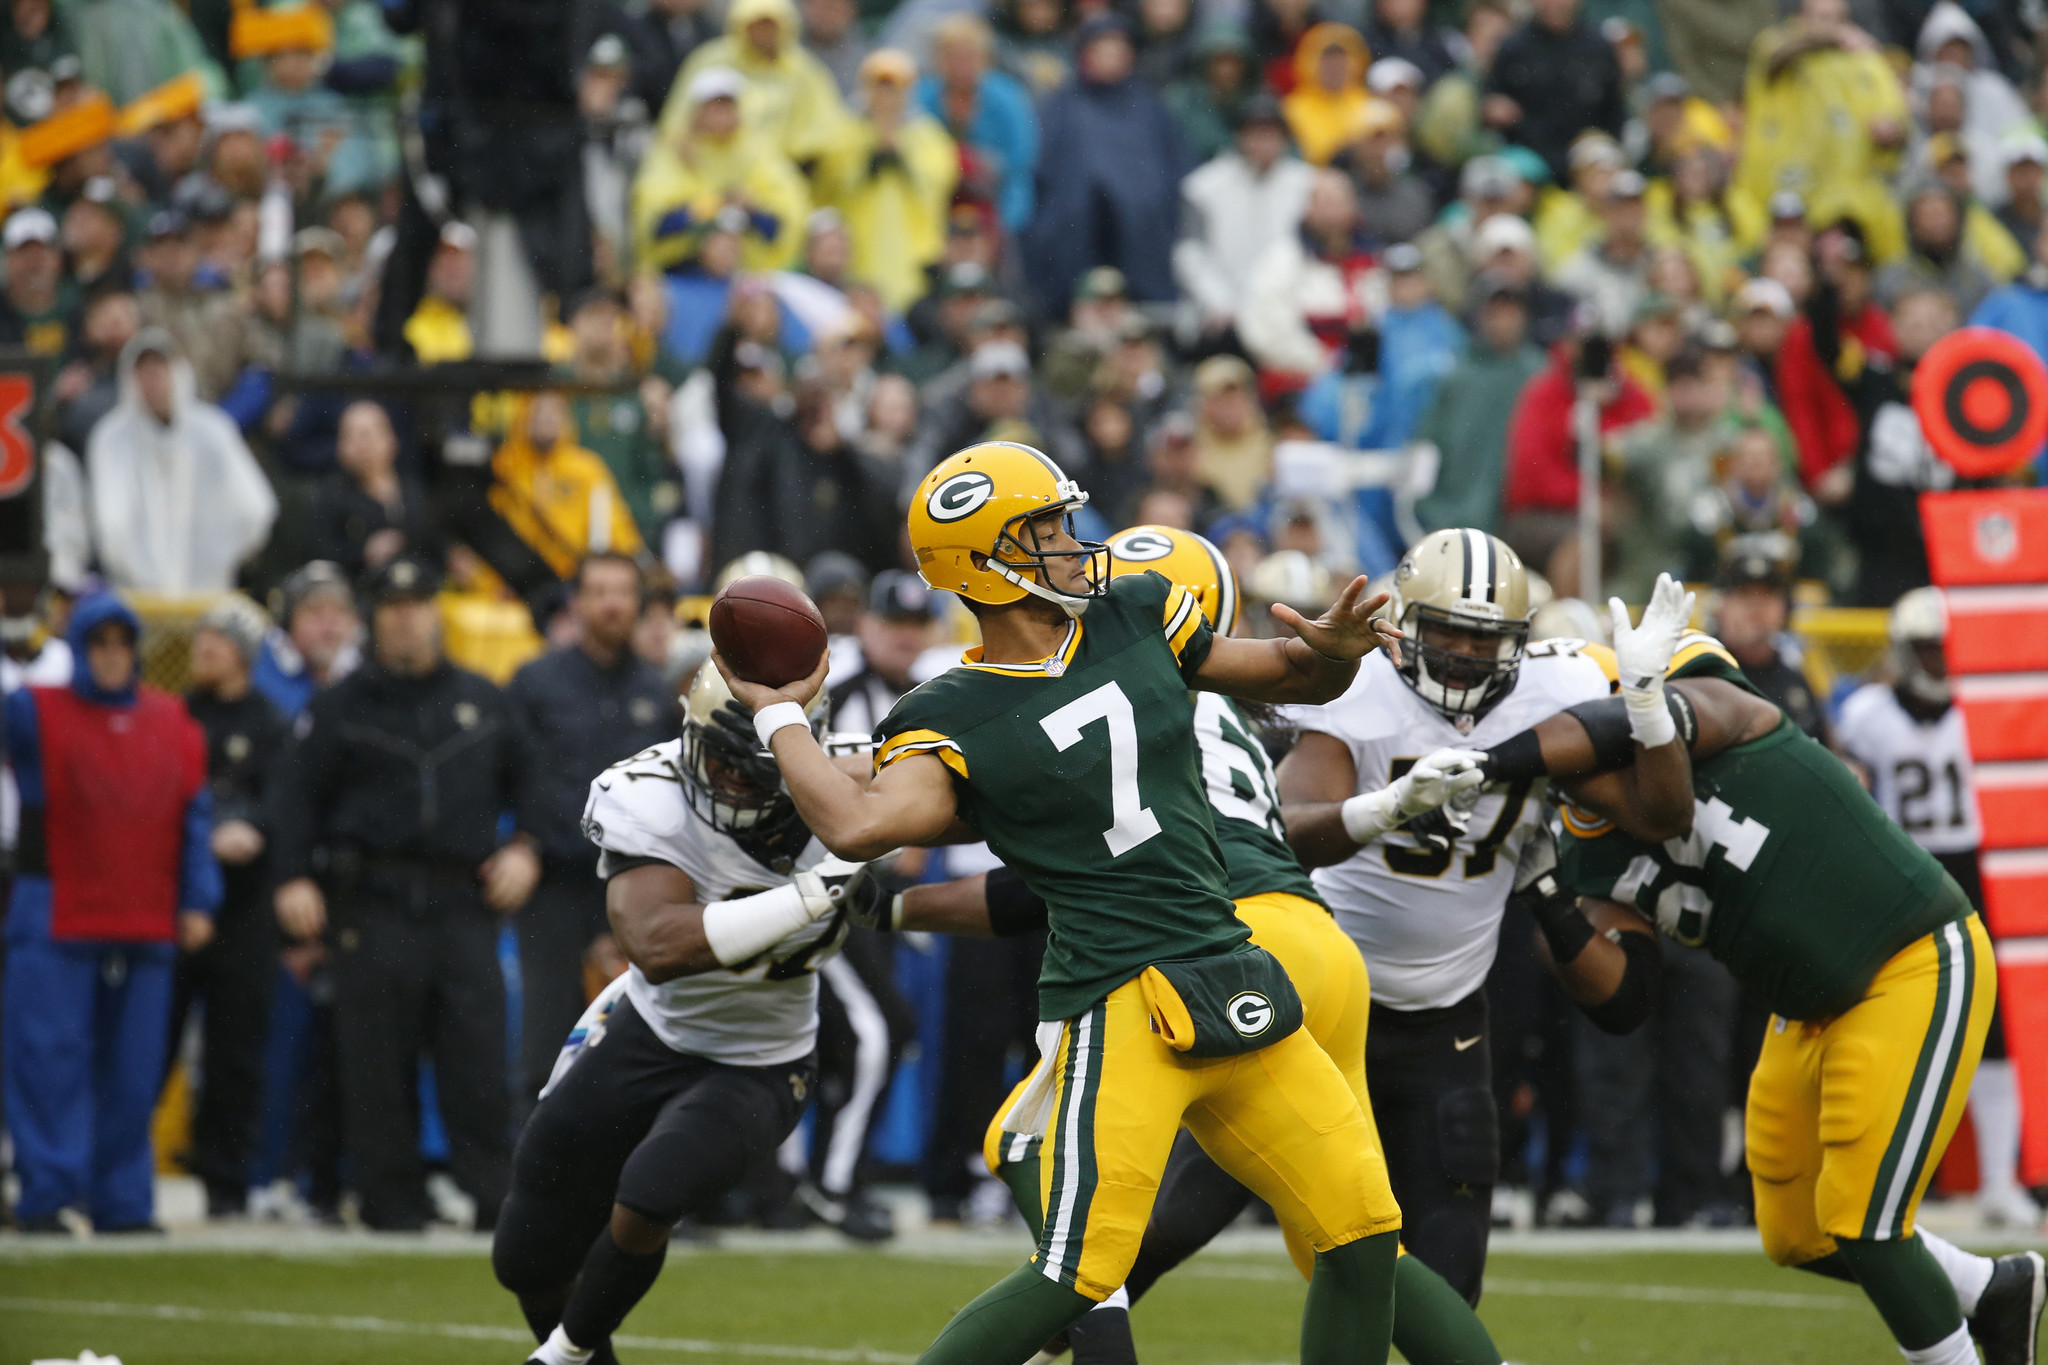 Ct-brett-hundley-packers-without-aaron-rodgers-20171023